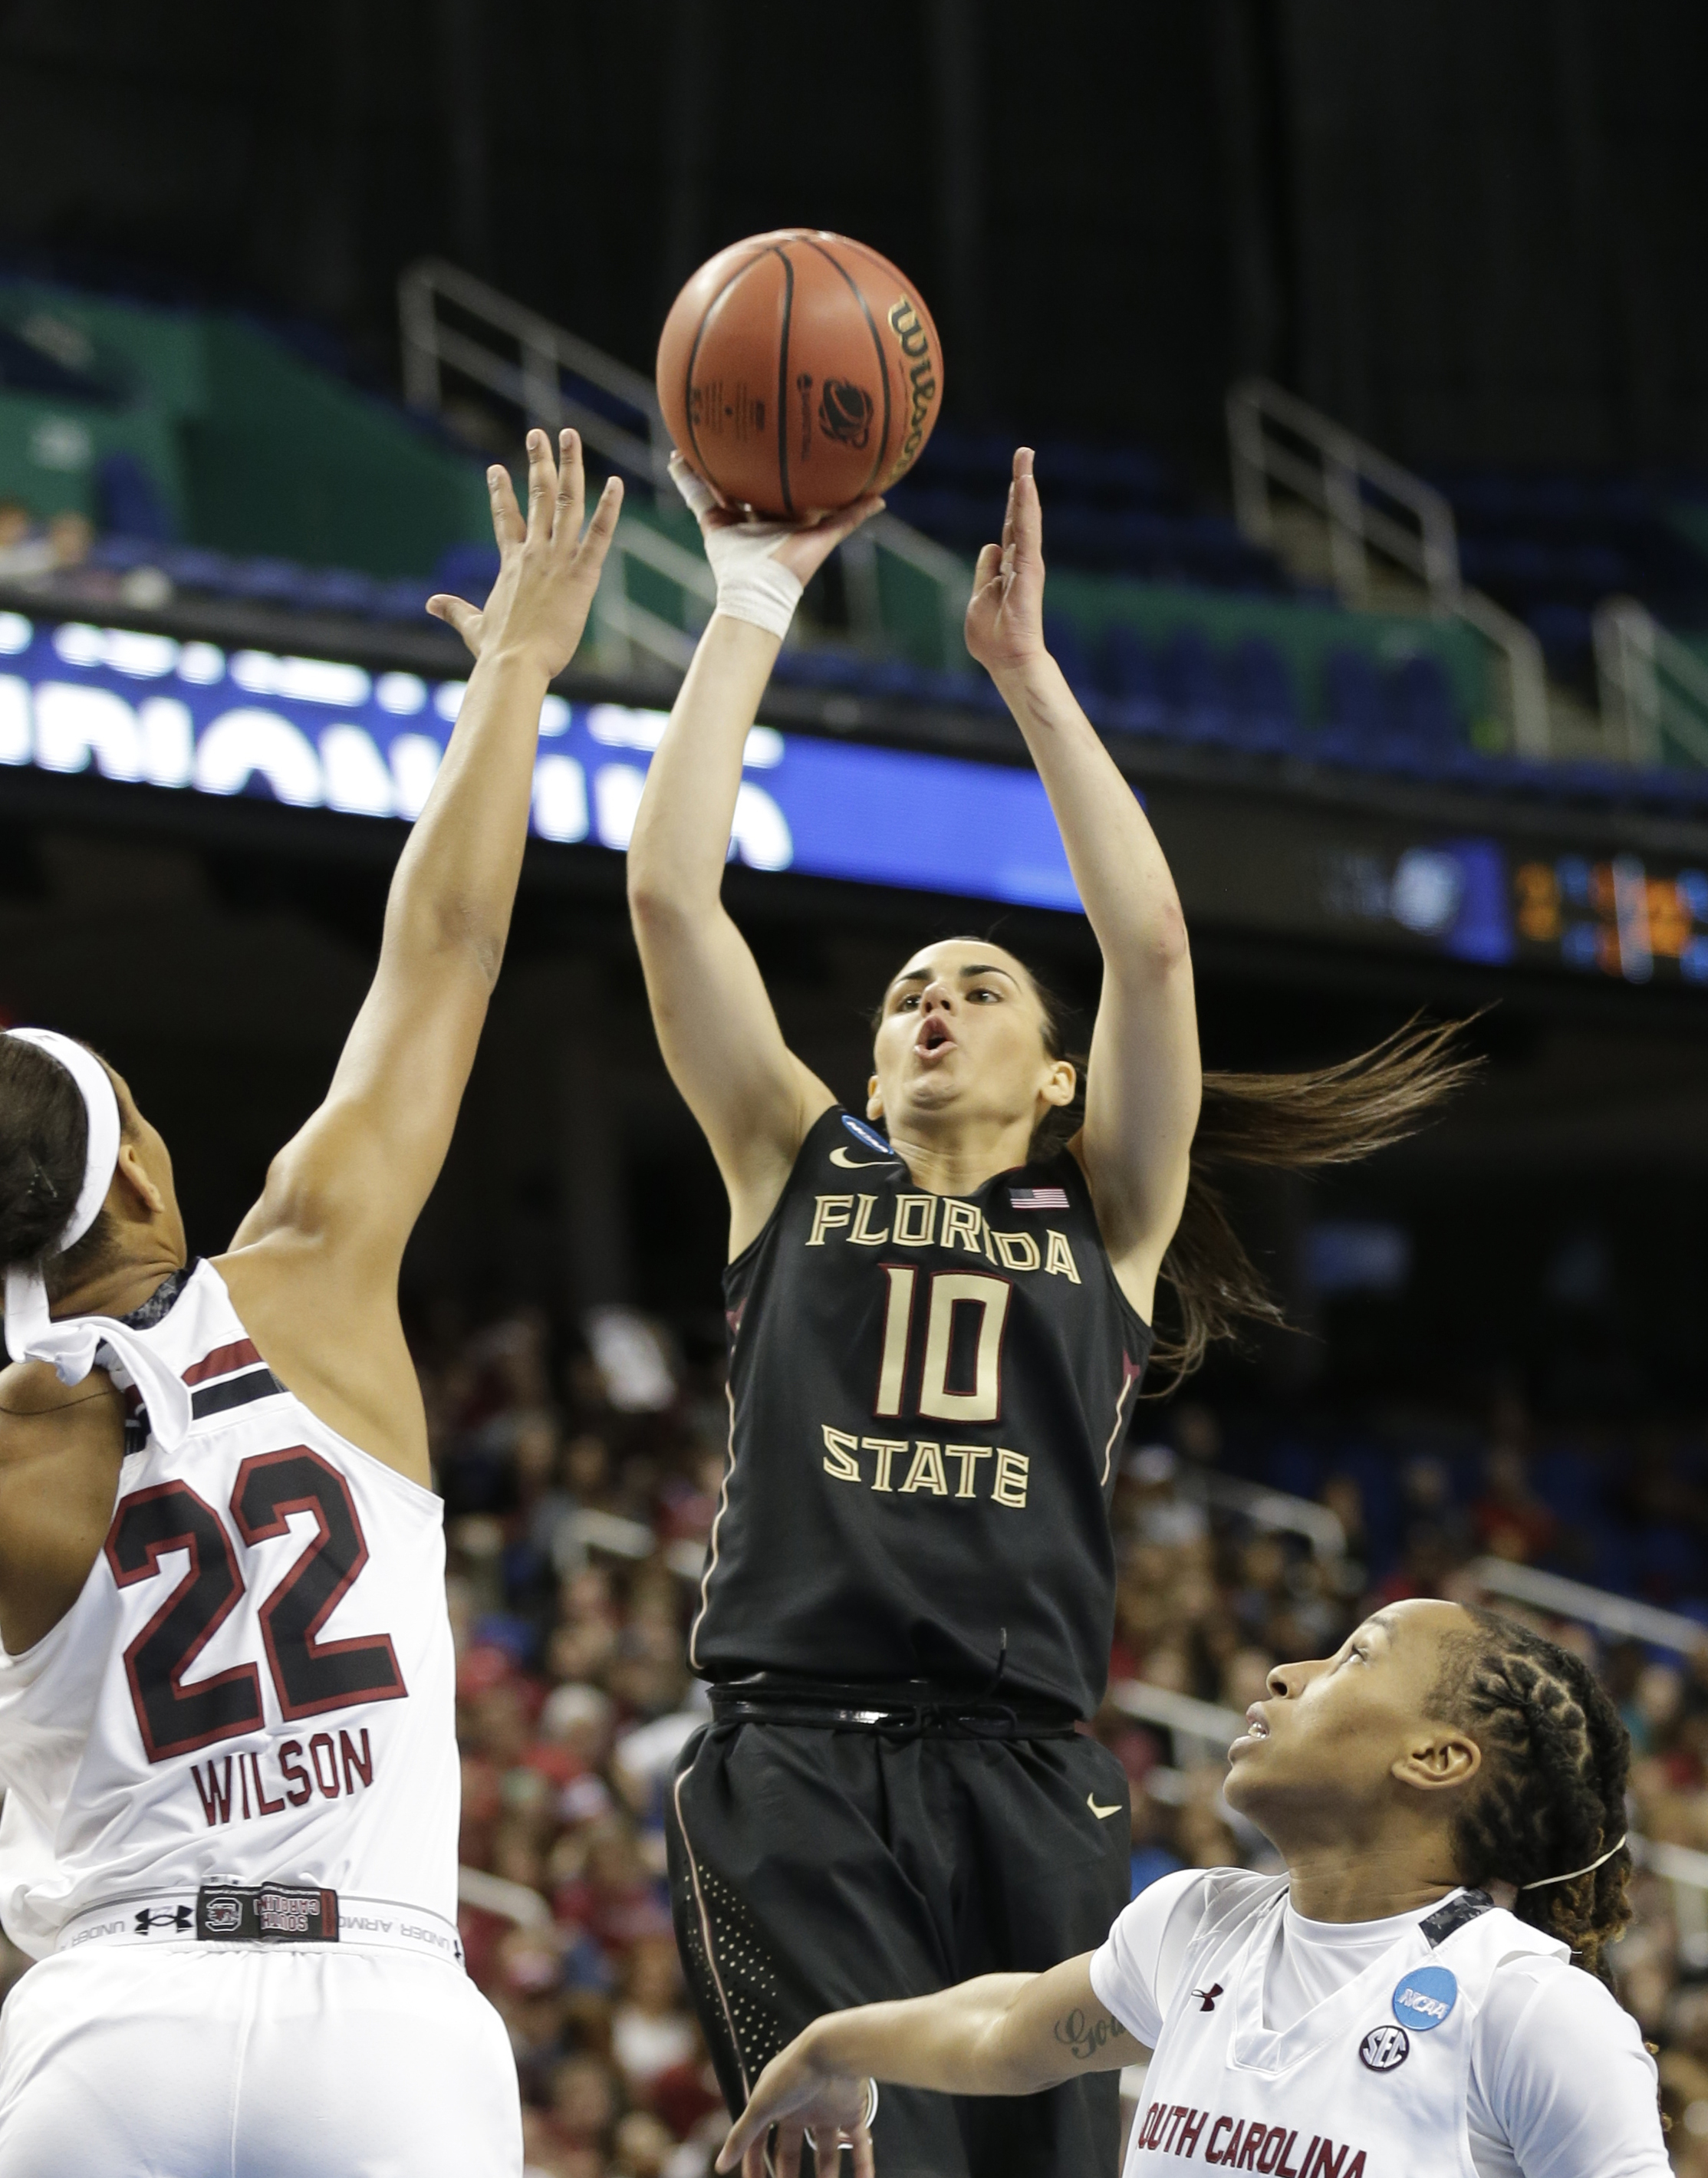 FILE - In this March 29, 2015, file photo, South Carolina's A'ja Wilson (22) and Olivia Gaines (2) defend as Florida State's Leticia Romero (10) shoots during the first half of a women's college basketball regional final game in the NCAA Tournament in Gre